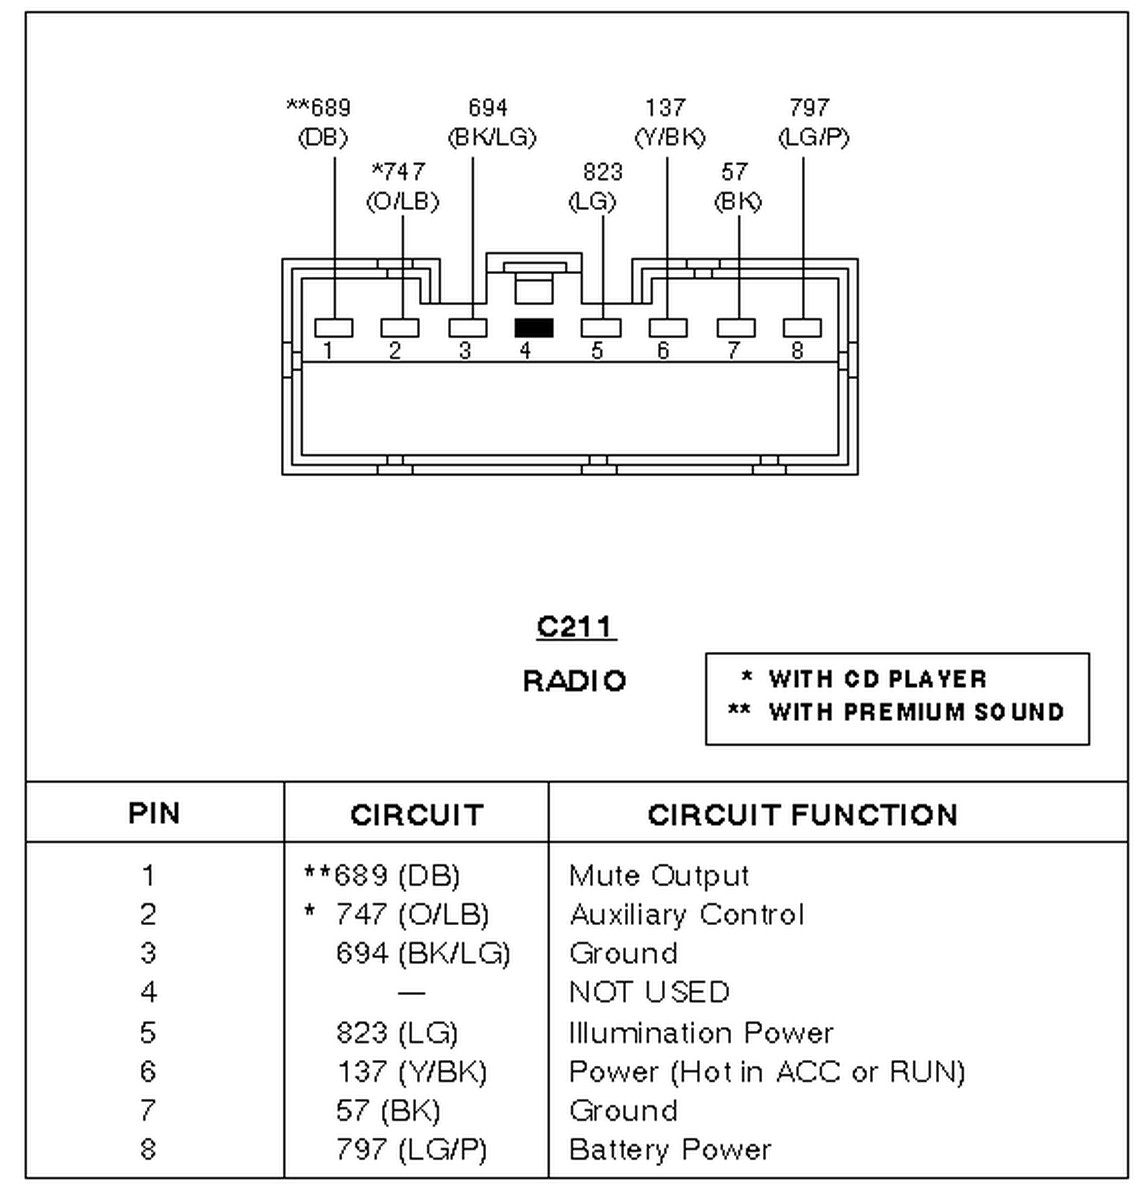 1997 ford explorer stereo wiring diagram Download-92 Ford Explorer Radio Wiring Diagram Gooddy Org Within 1996 And At 2003 1-k